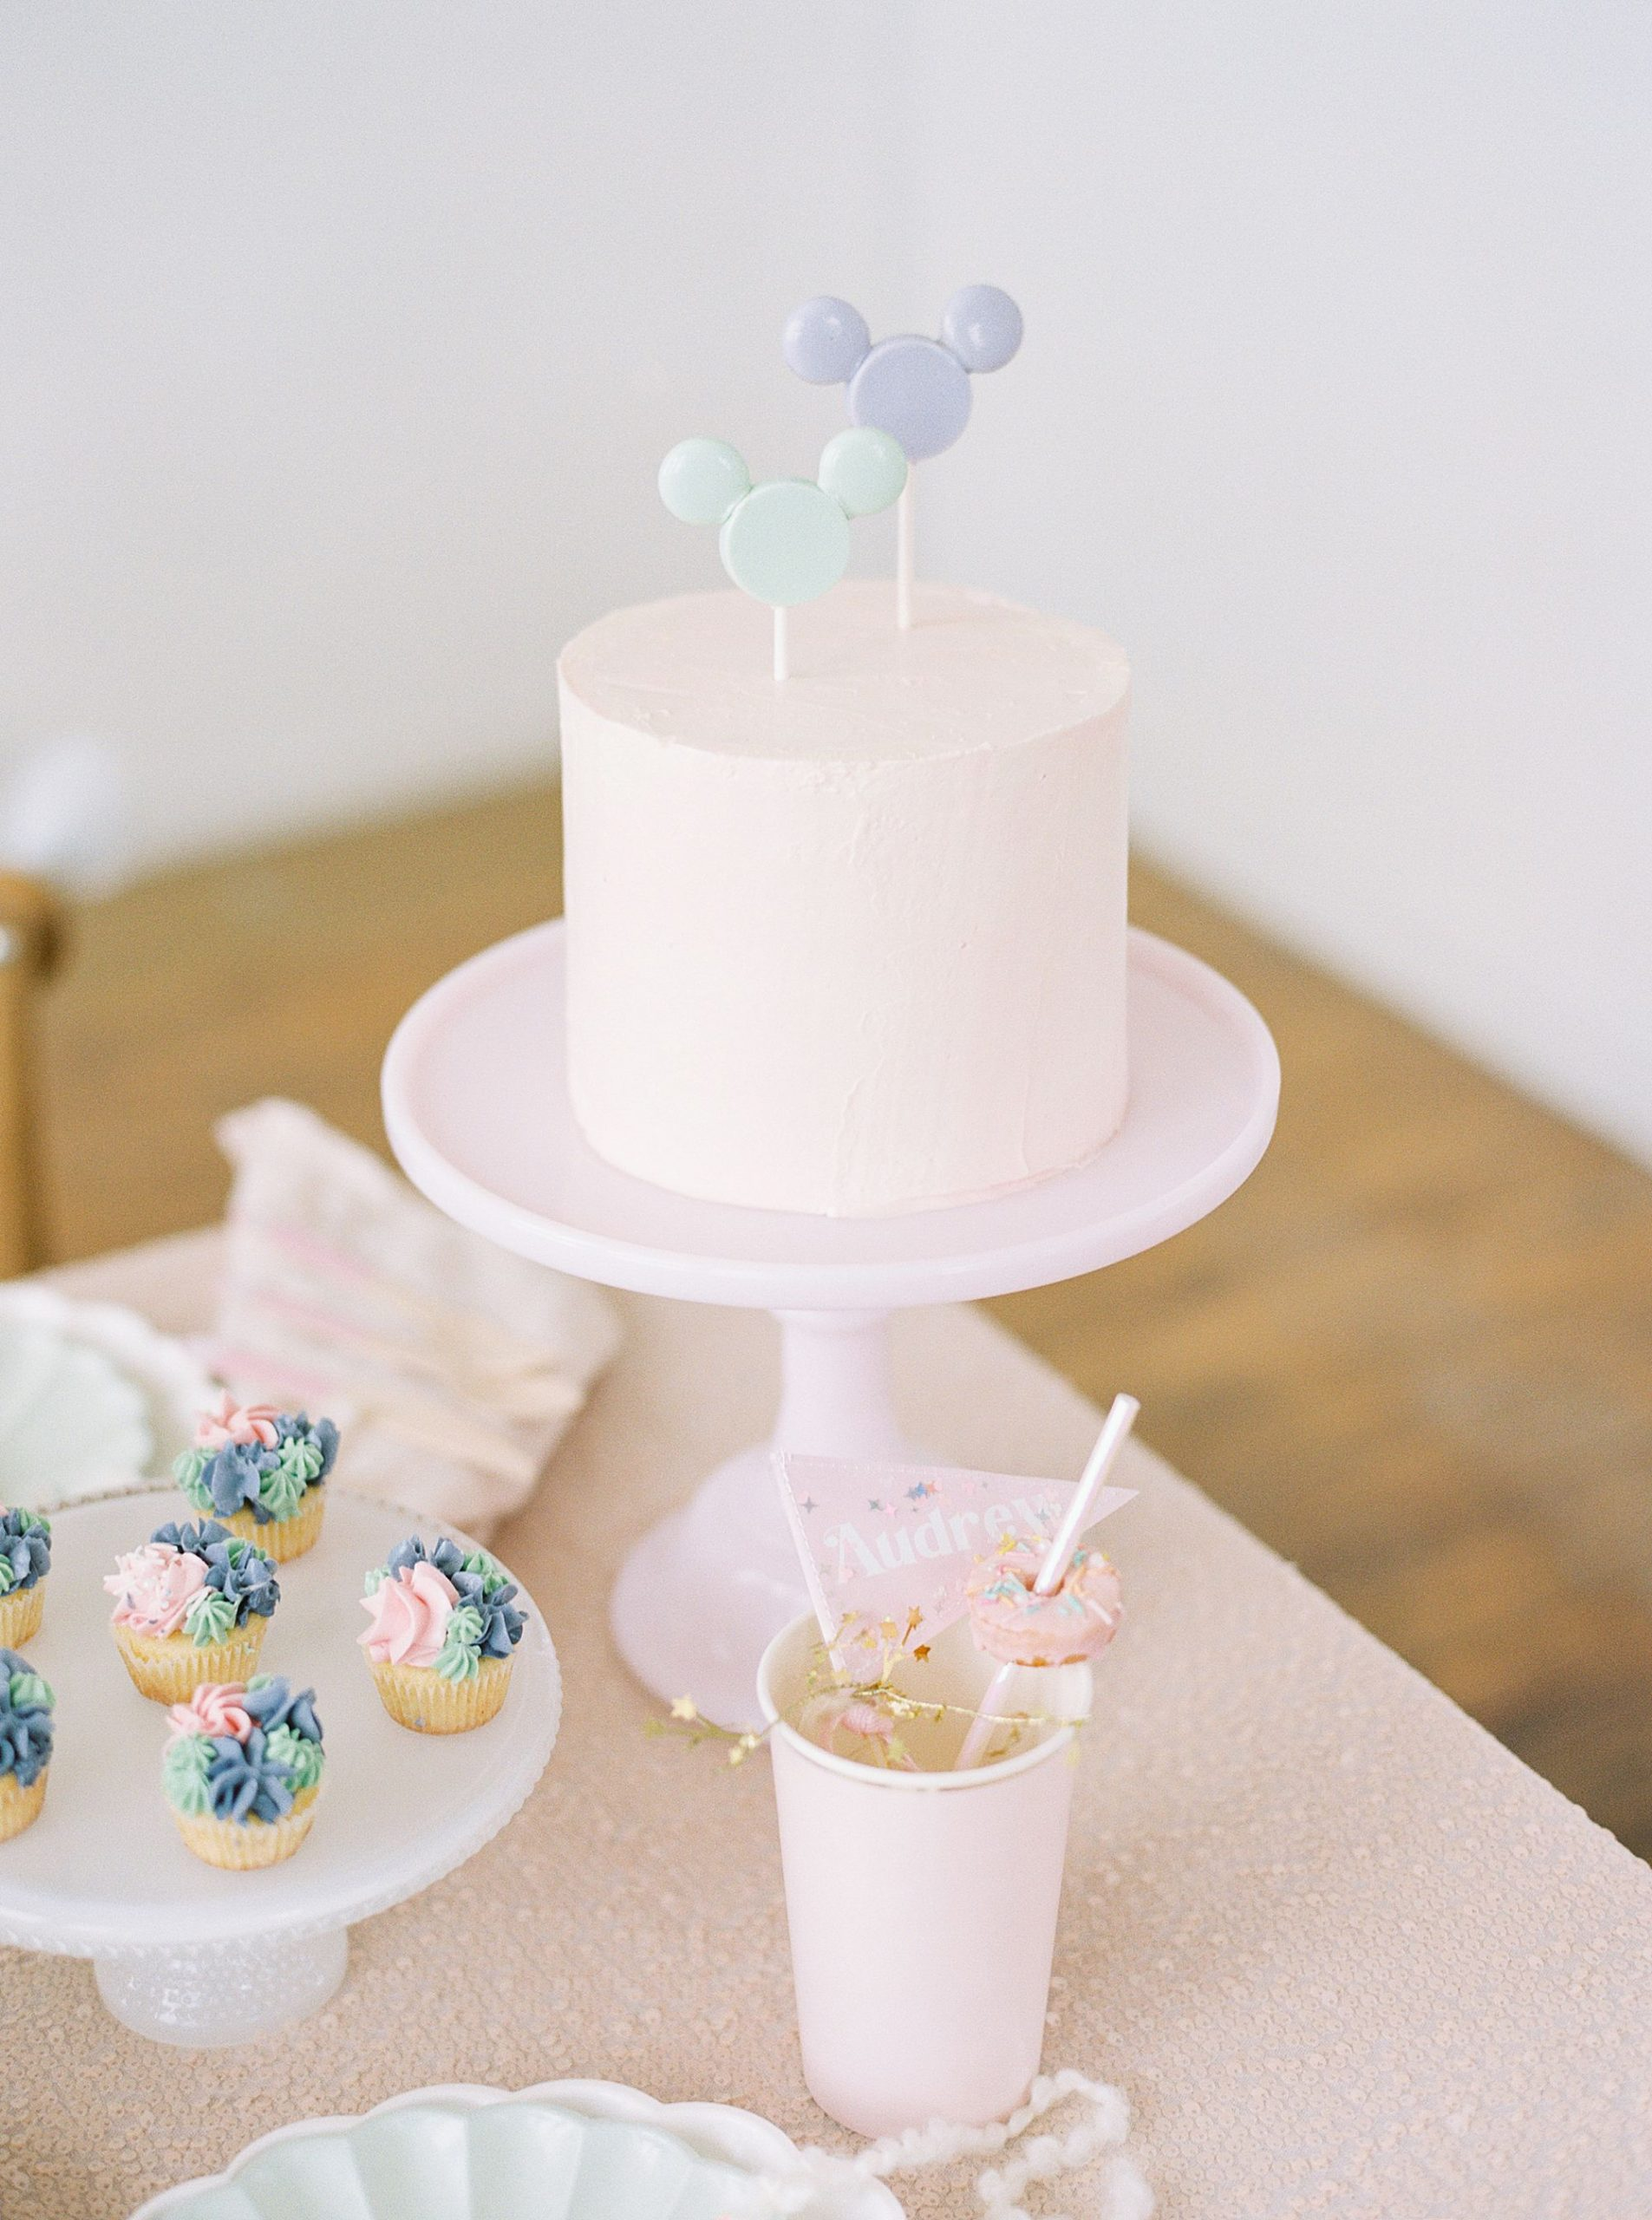 Vintage Disney Birthday Party for Princess Nora's Fourth Birthday - Featured on 100 Layer Cake - Ashley Baumgartner - Parker Grace Events_0041.jpg